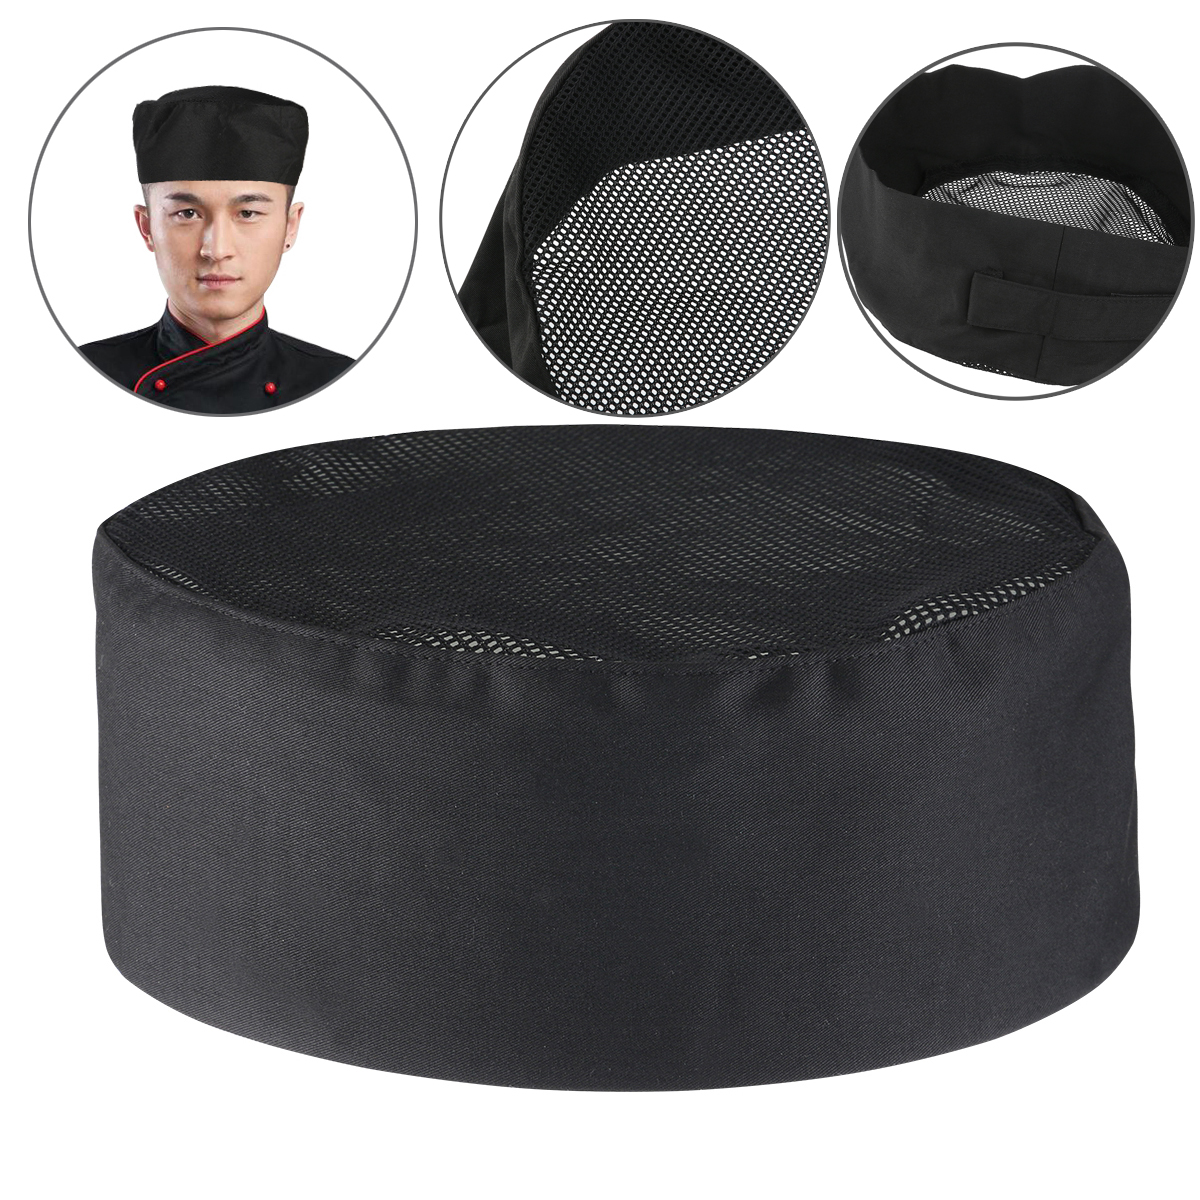 FOXNOVO Breathable Mesh Chefs Hat Cap Professional Catering Chefs Hat With Adjustable Strap Kitchen Supplies One Size Black in Other Kitchen Specialty Tools from Home Garden